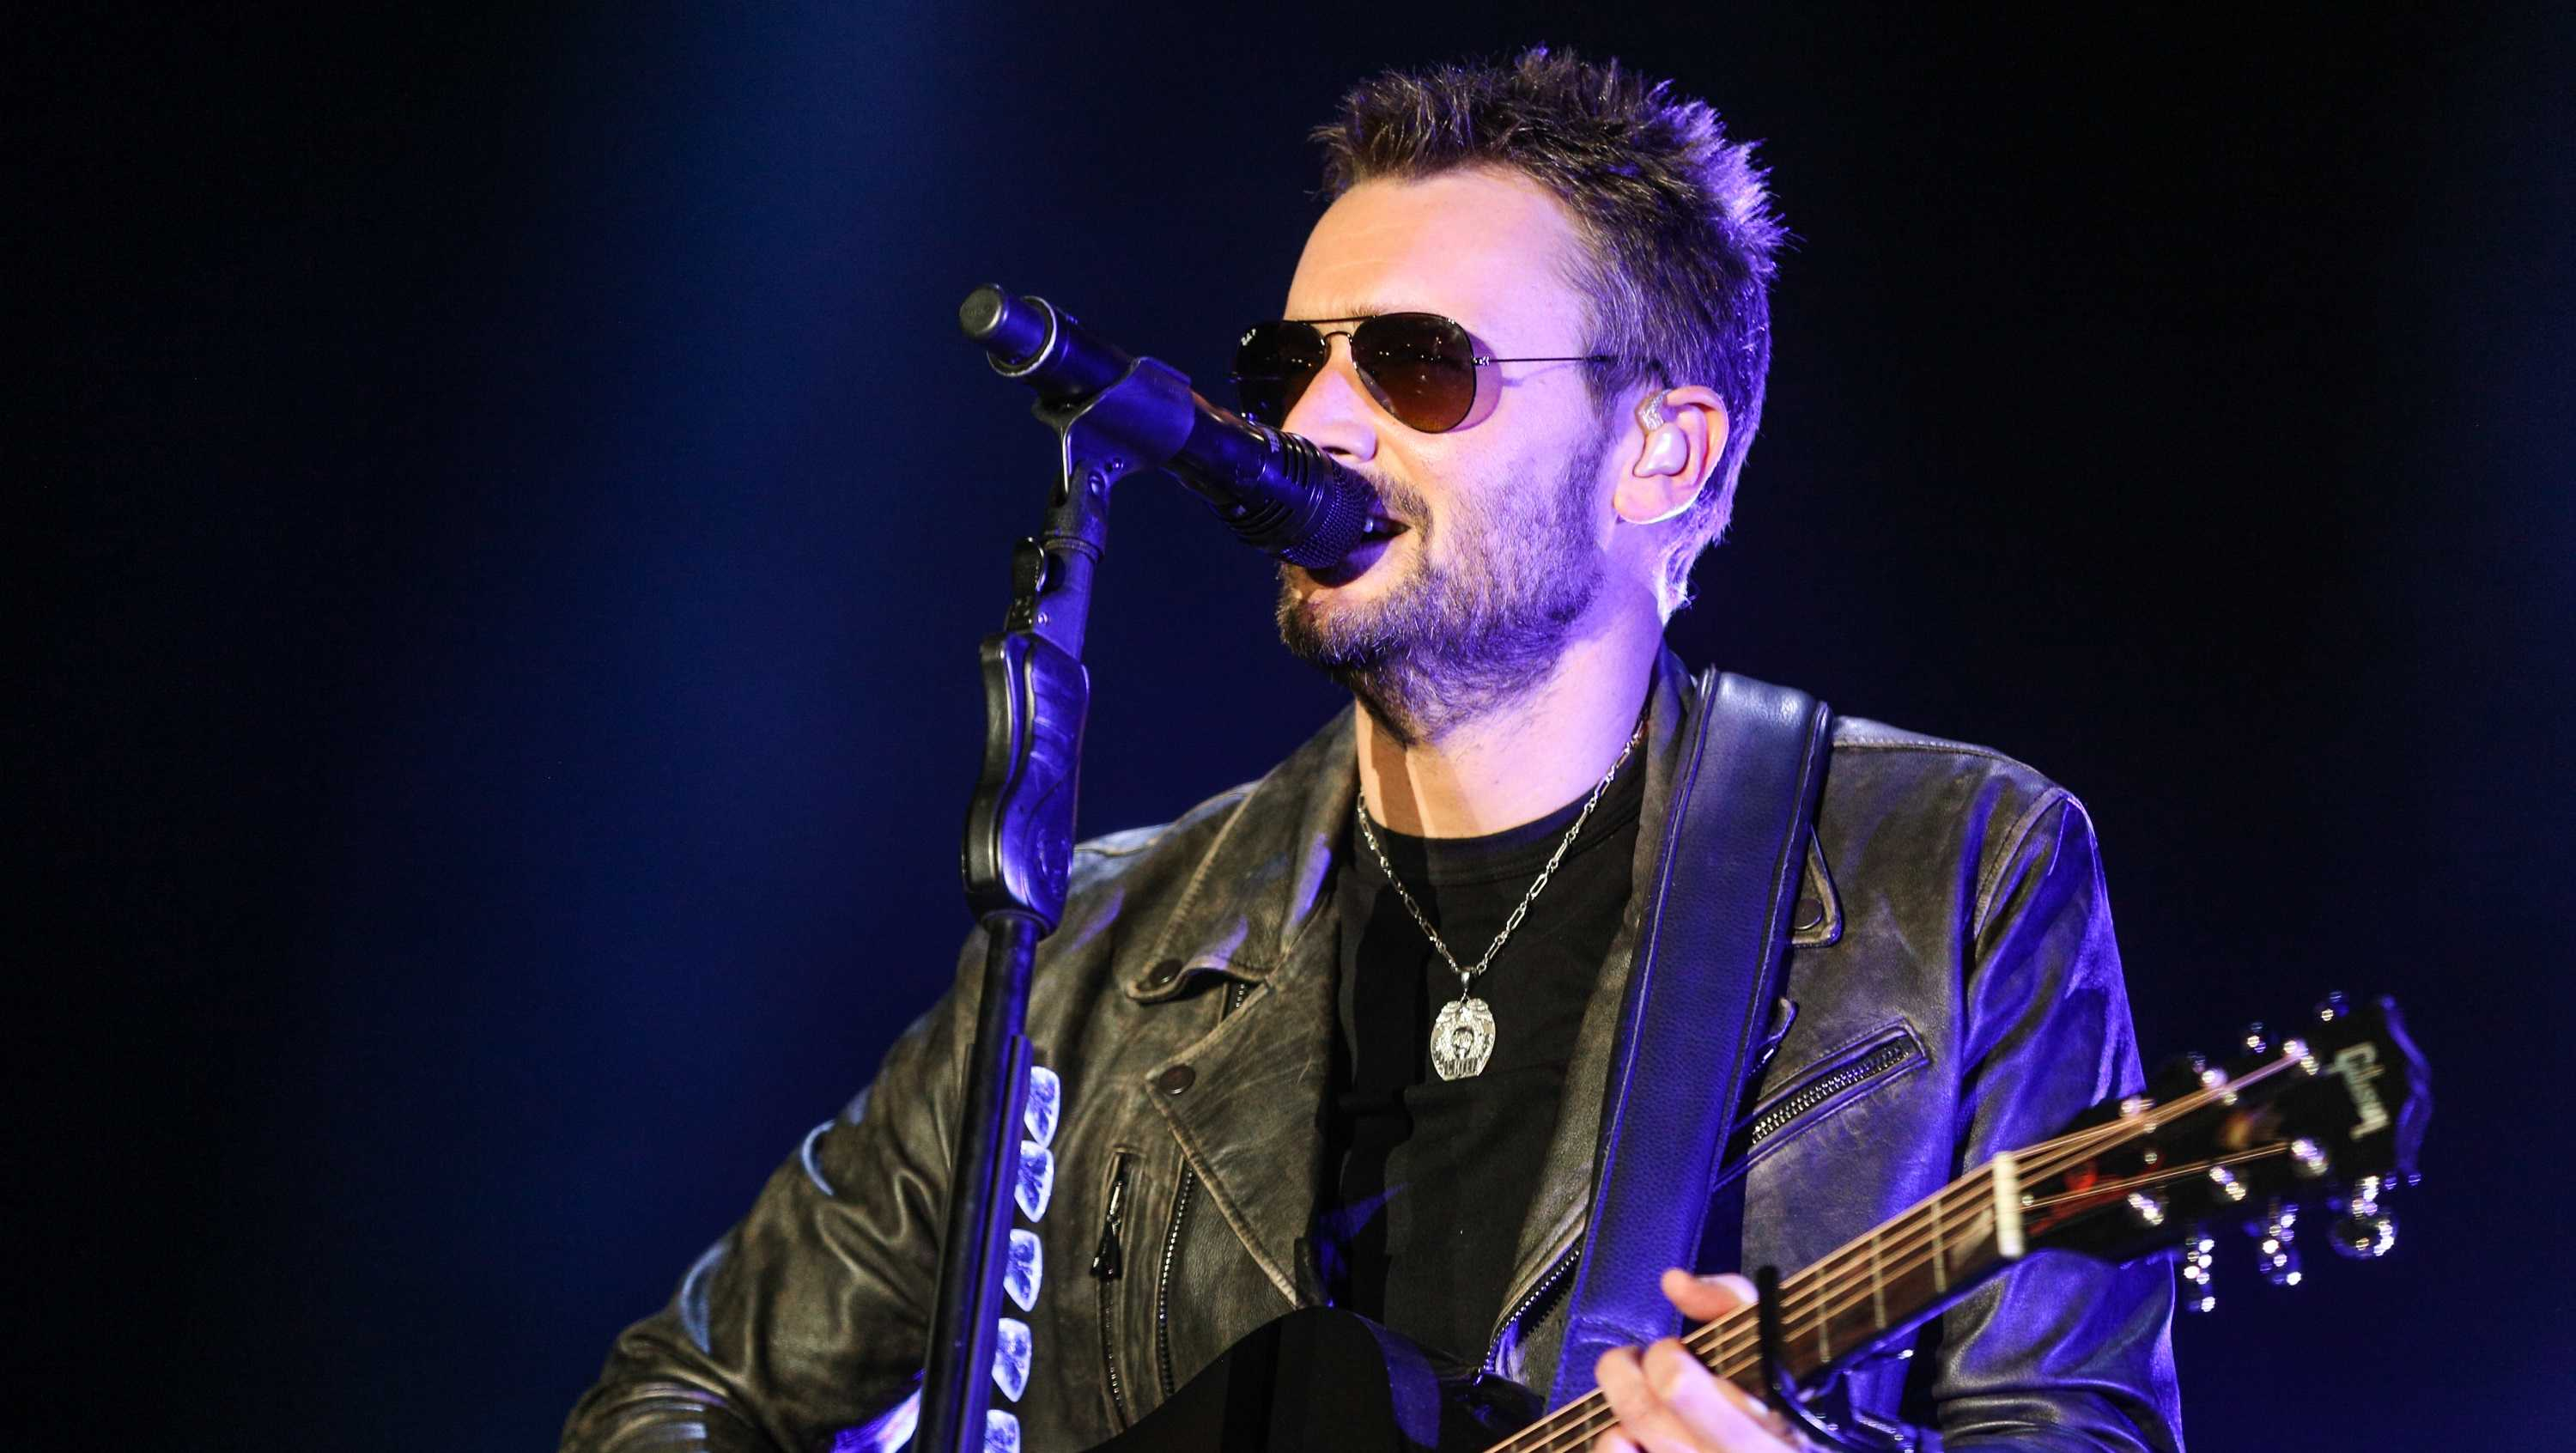 Eric Church performs at the 2016 Stagecoach Festival at the Empire Polo Club on Friday, April 29, 2016, in Indio, Calif. (